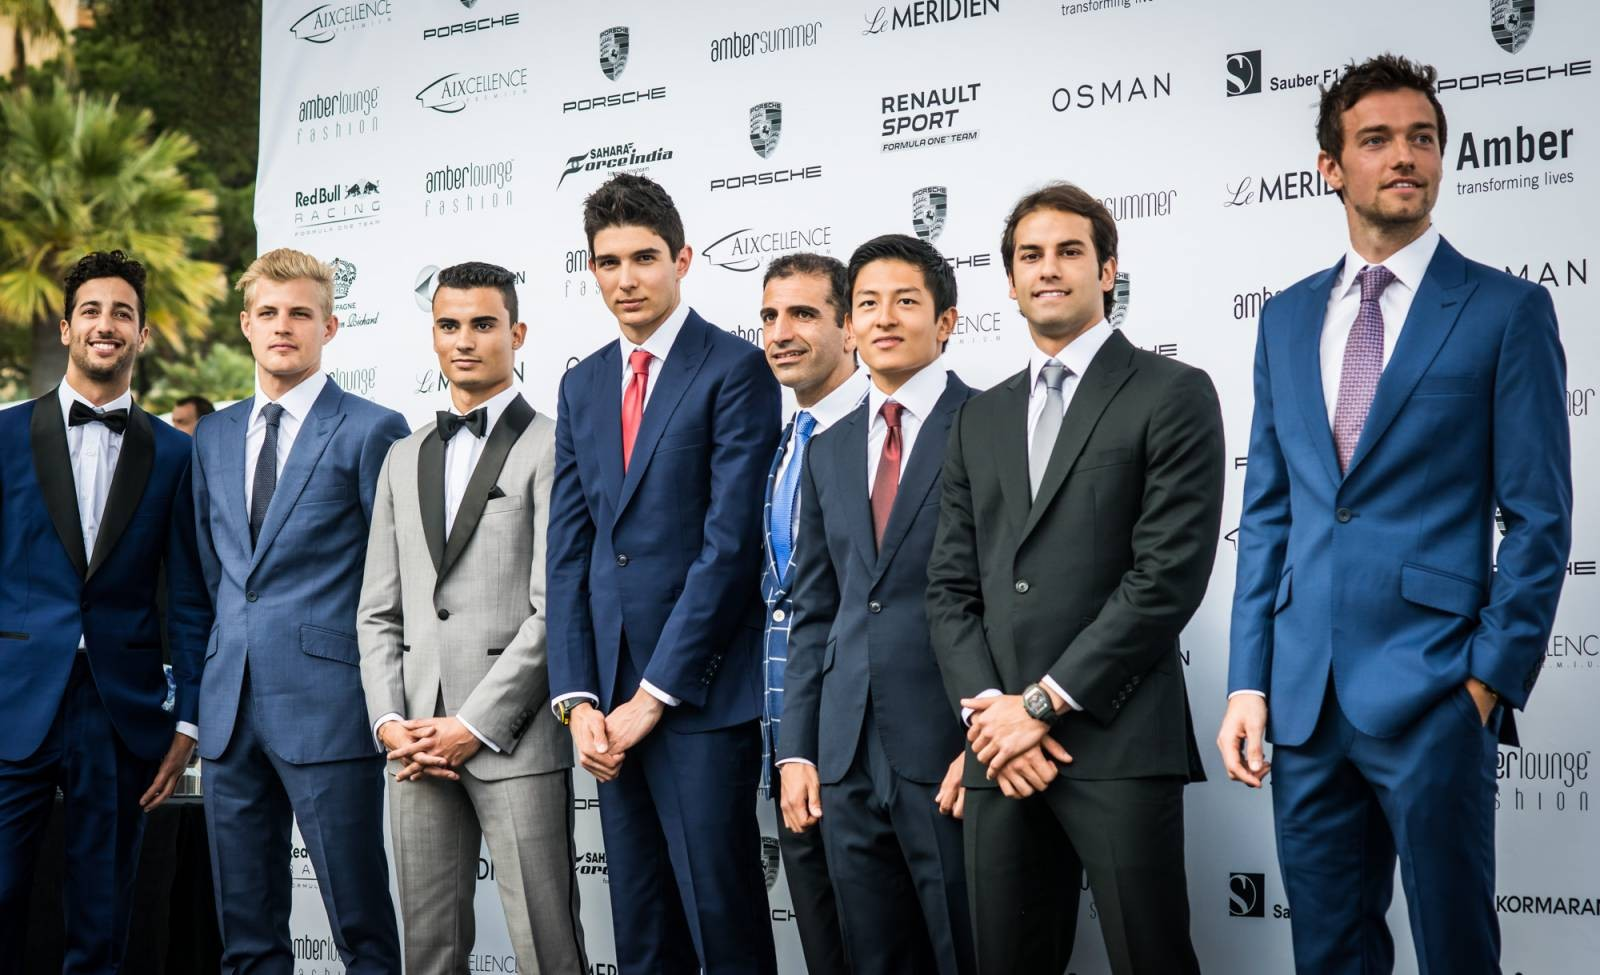 formula1-drivers-fashion-show-monaco